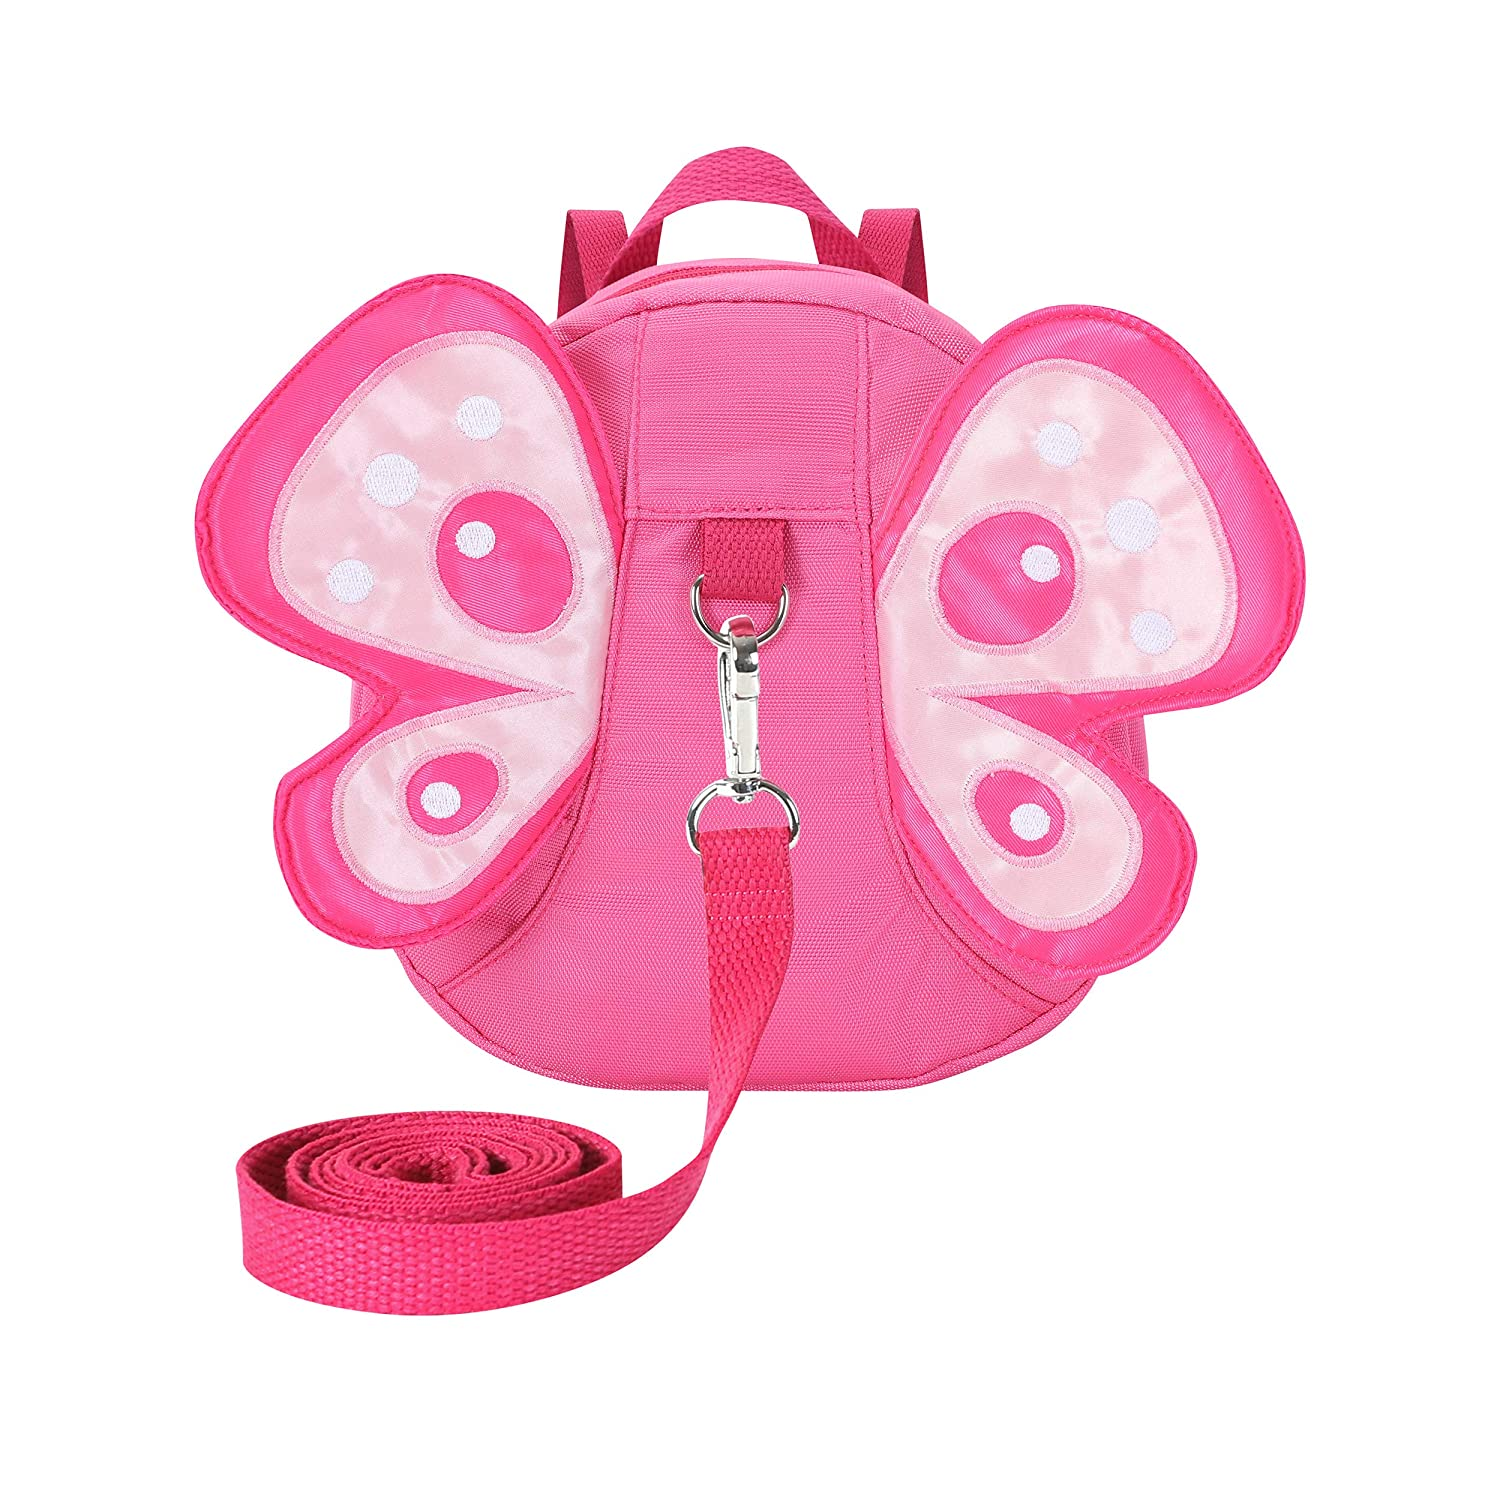 EPLAZA Toddler Walking Safety Butterfly Belt Backpack with Leash Kid Child Harness Strap Bag (Butterfly Backpack Rose)